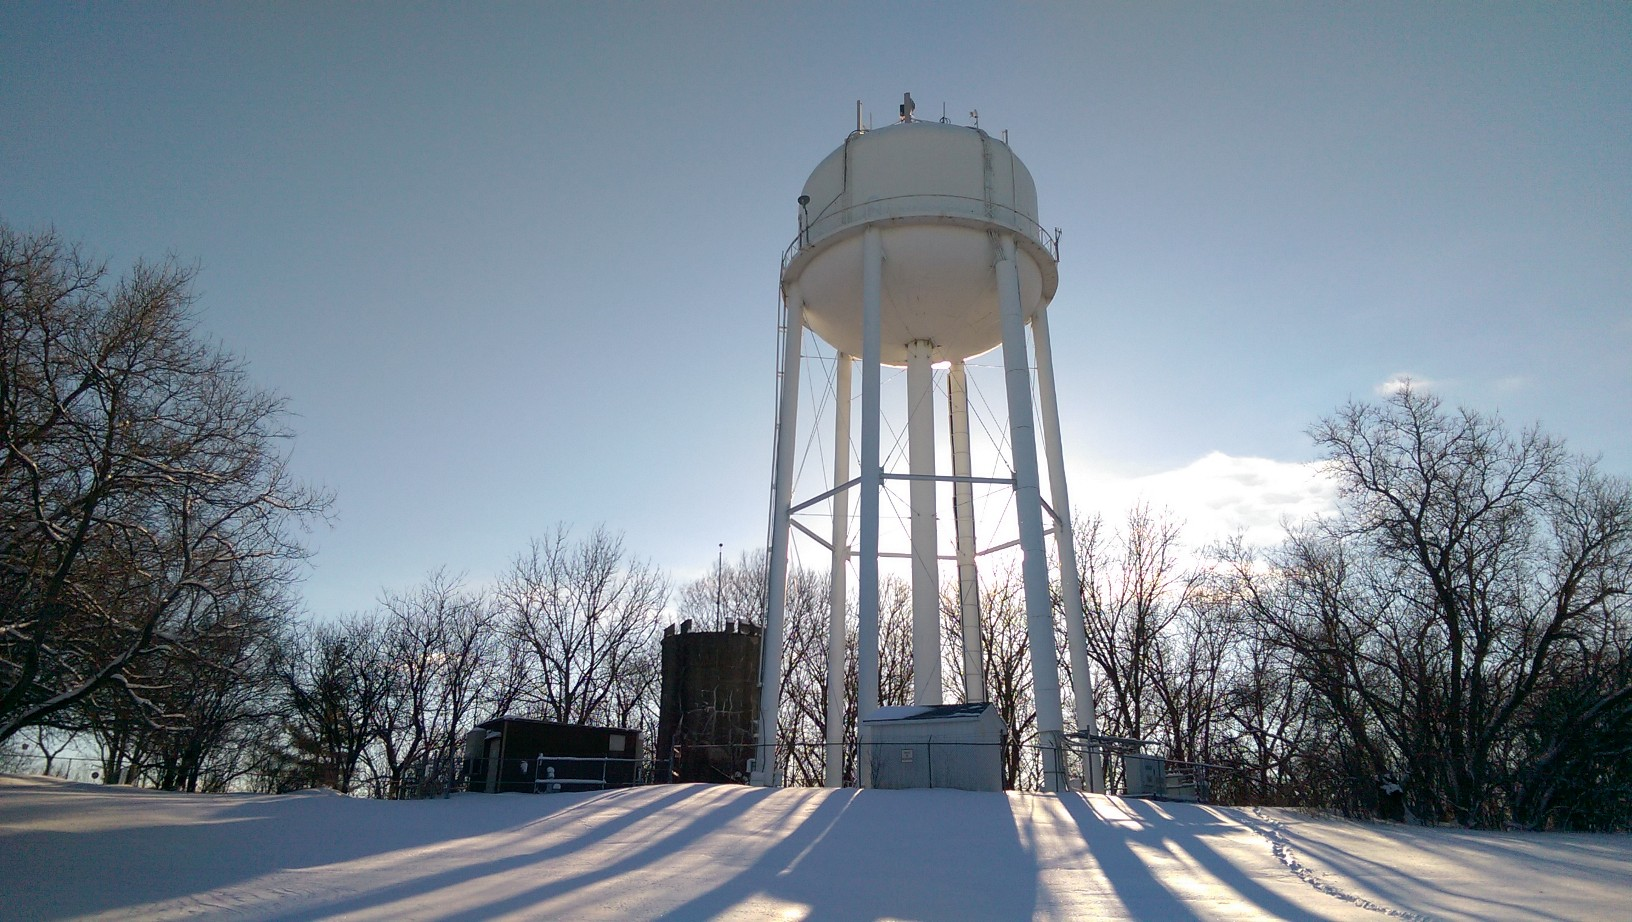 HIGH ROAD WATER TOWER